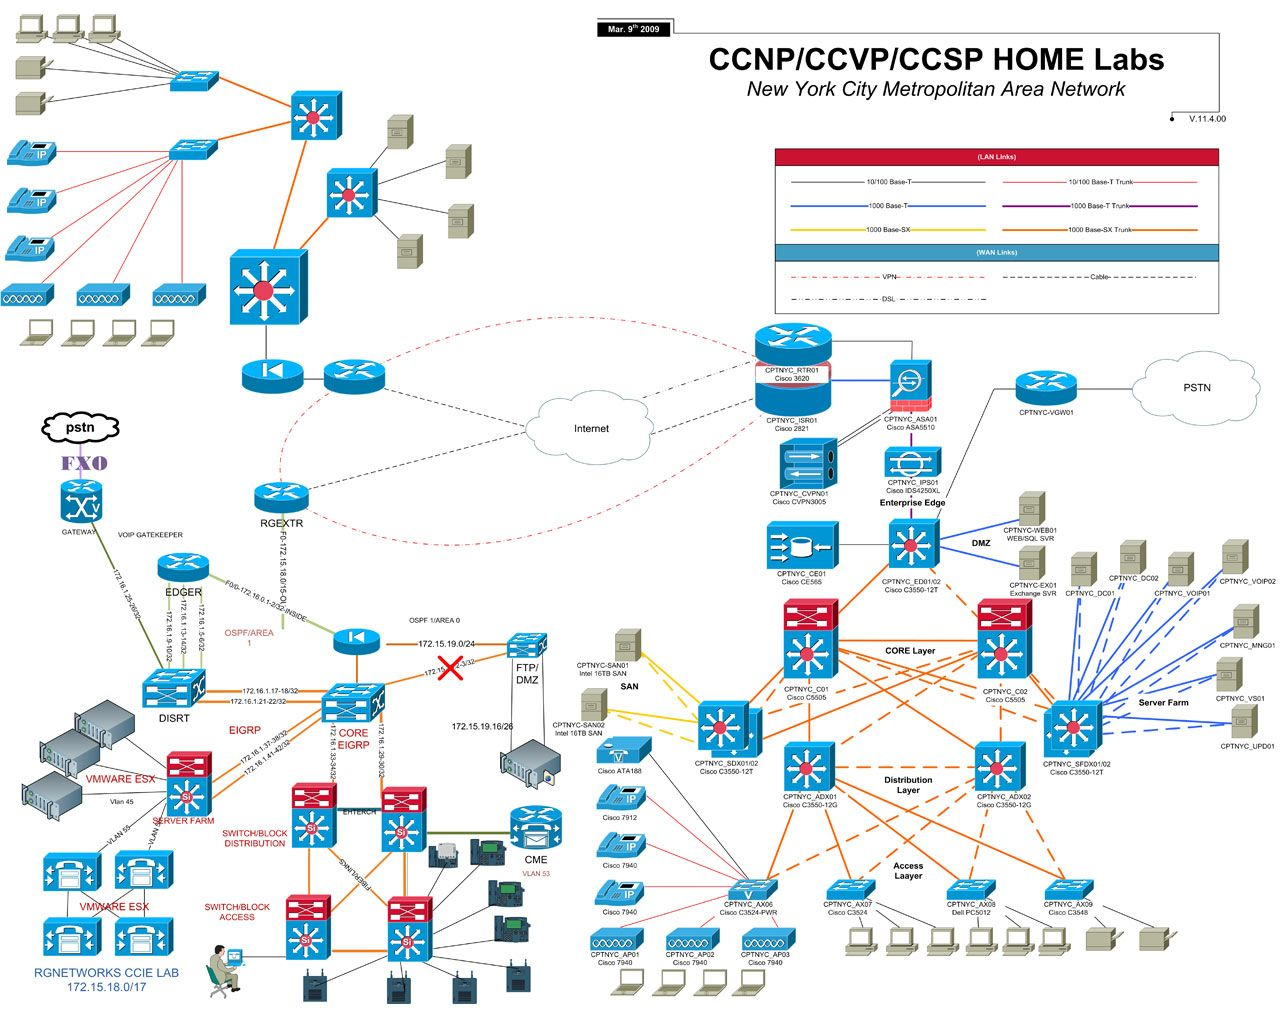 17 Awesome Network Diagram Examples For You Http Bookingritzcarlton Info 17 Awesome Netwo Diagram Design Network Infrastructure Diagram